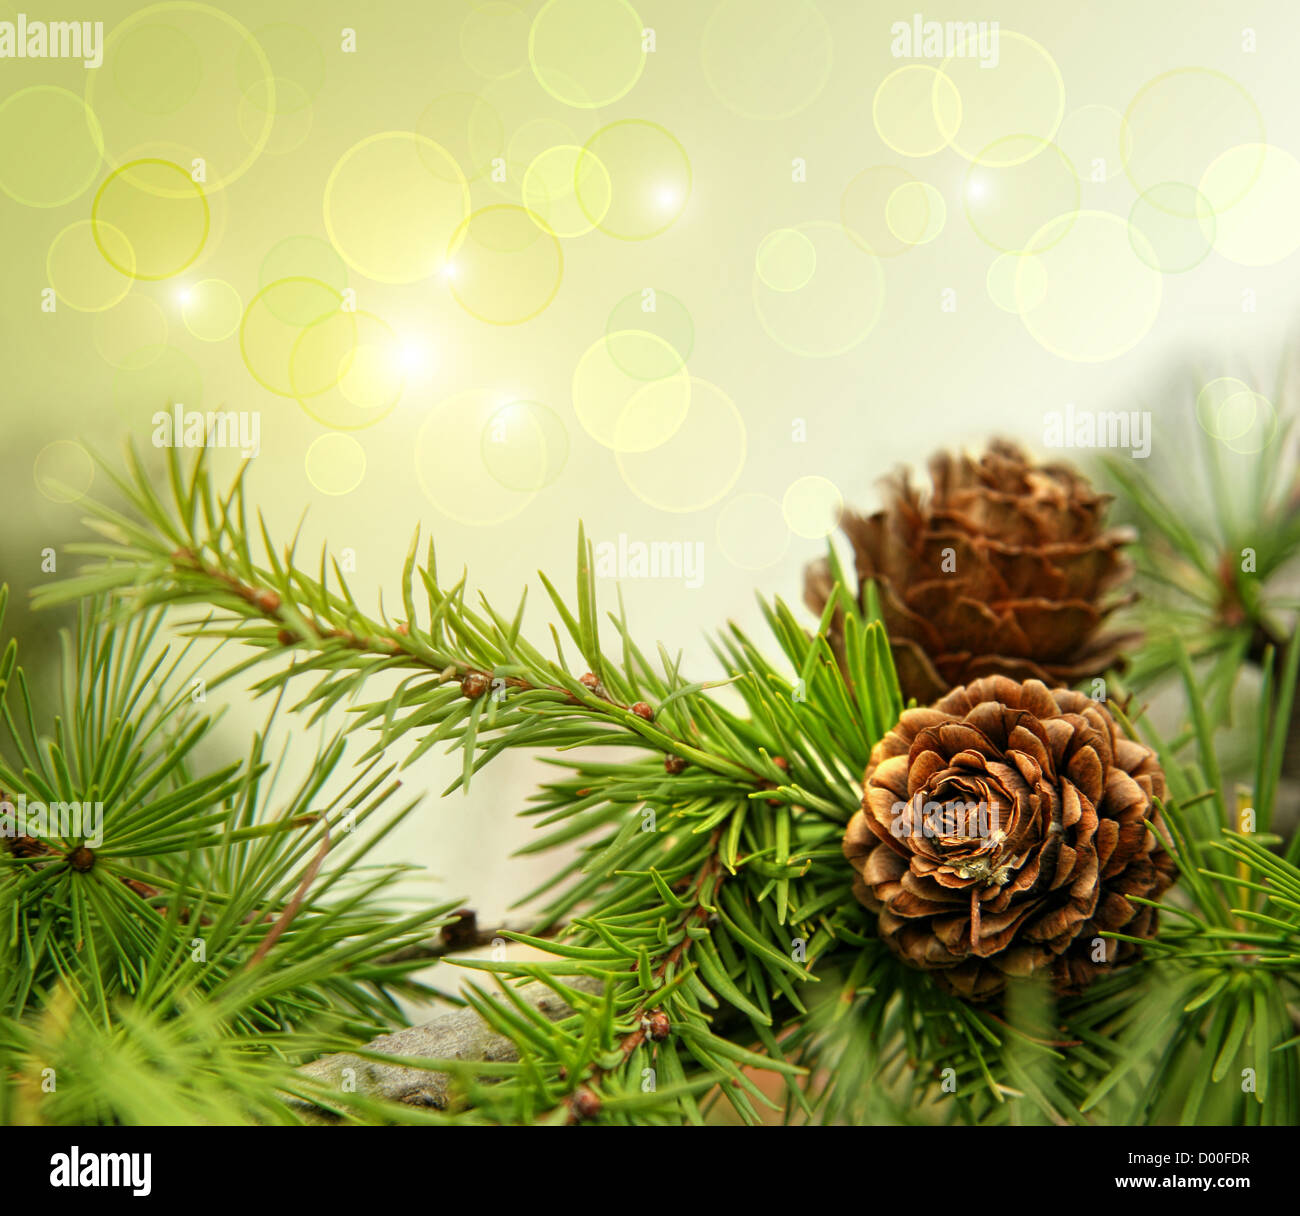 Pine cones on branches with holiday background - Stock Image